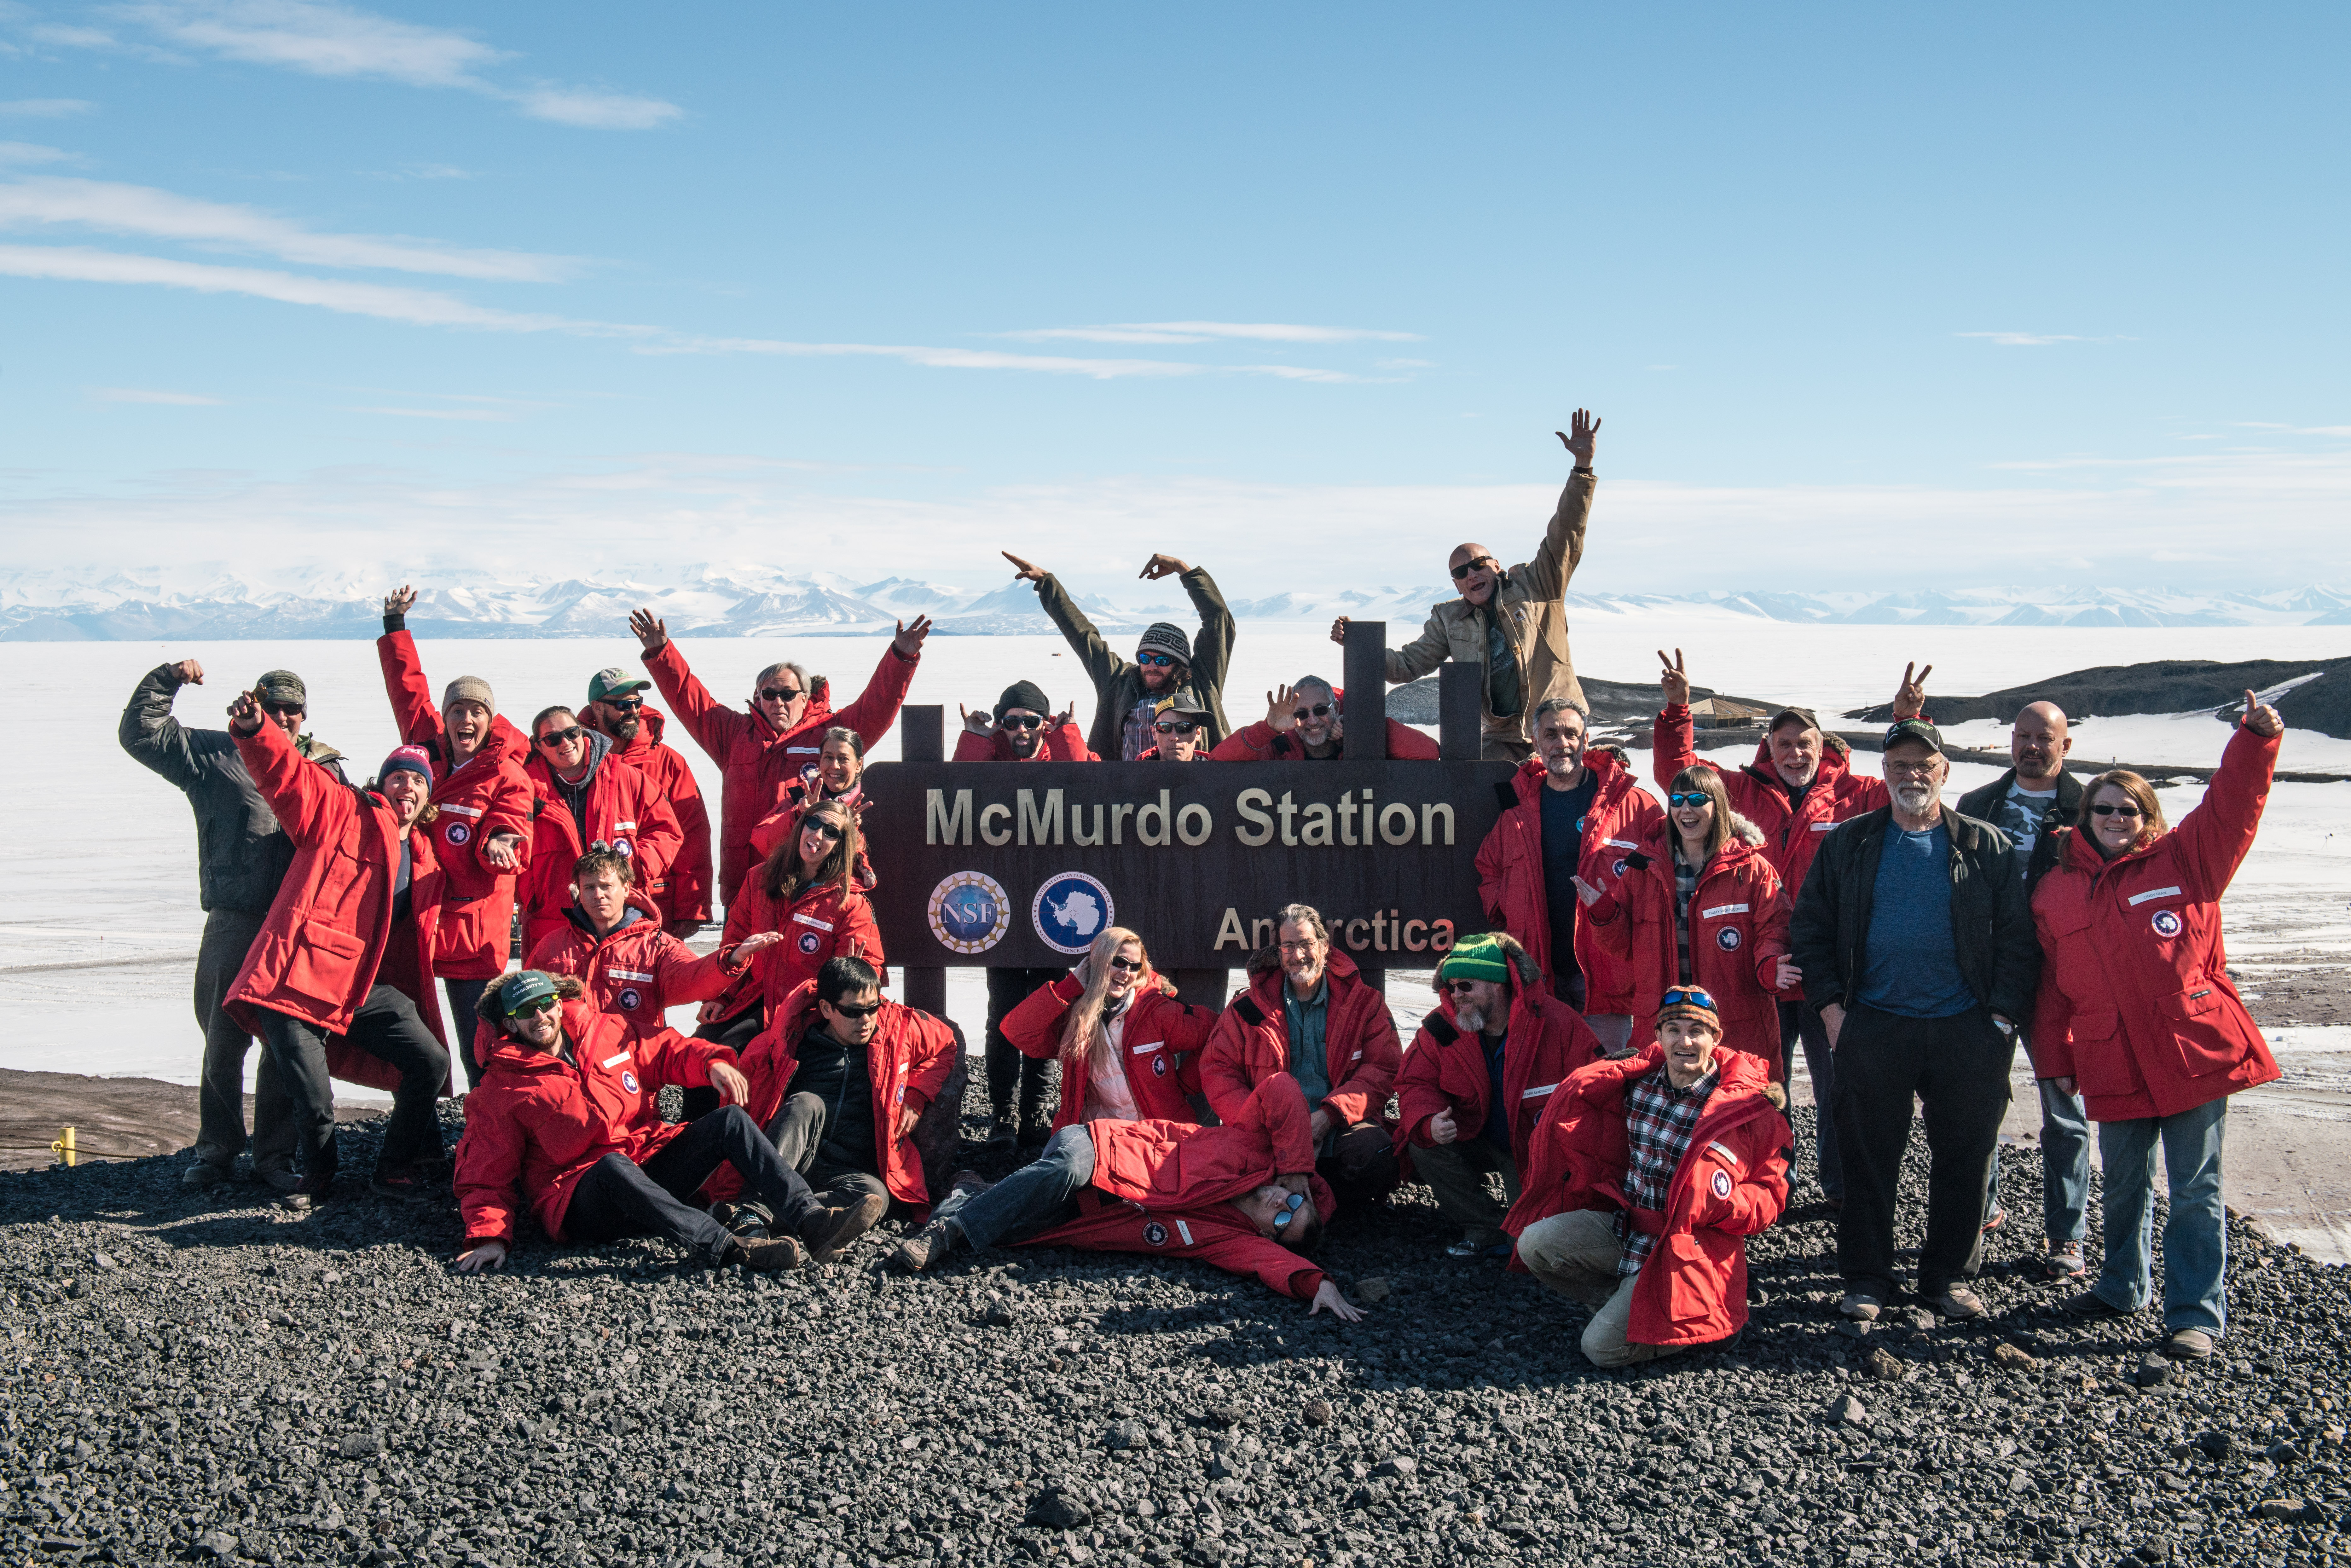 21 Members of the Science Team Arrive at McMurdo Station and Geophysics Team Moves to Whillans Subglacial Lake